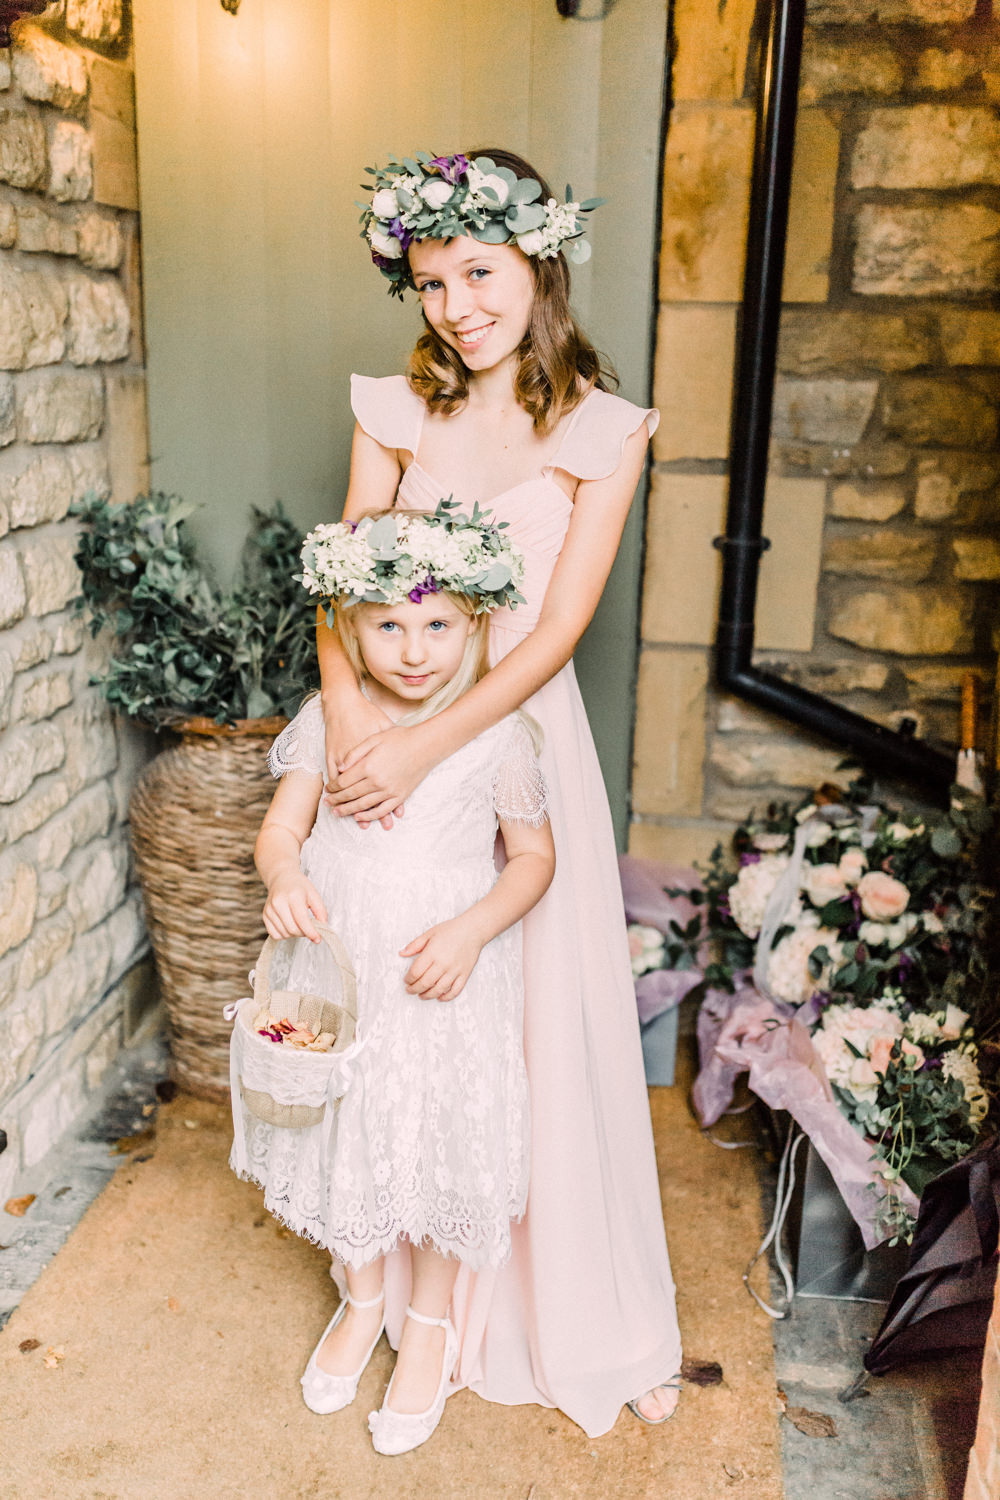 Flower Girl Bridesmaid Flower Crowns Petal Basket Pink Dress Pheasant Harome Wedding Yorkshire Arabella Smith Photography